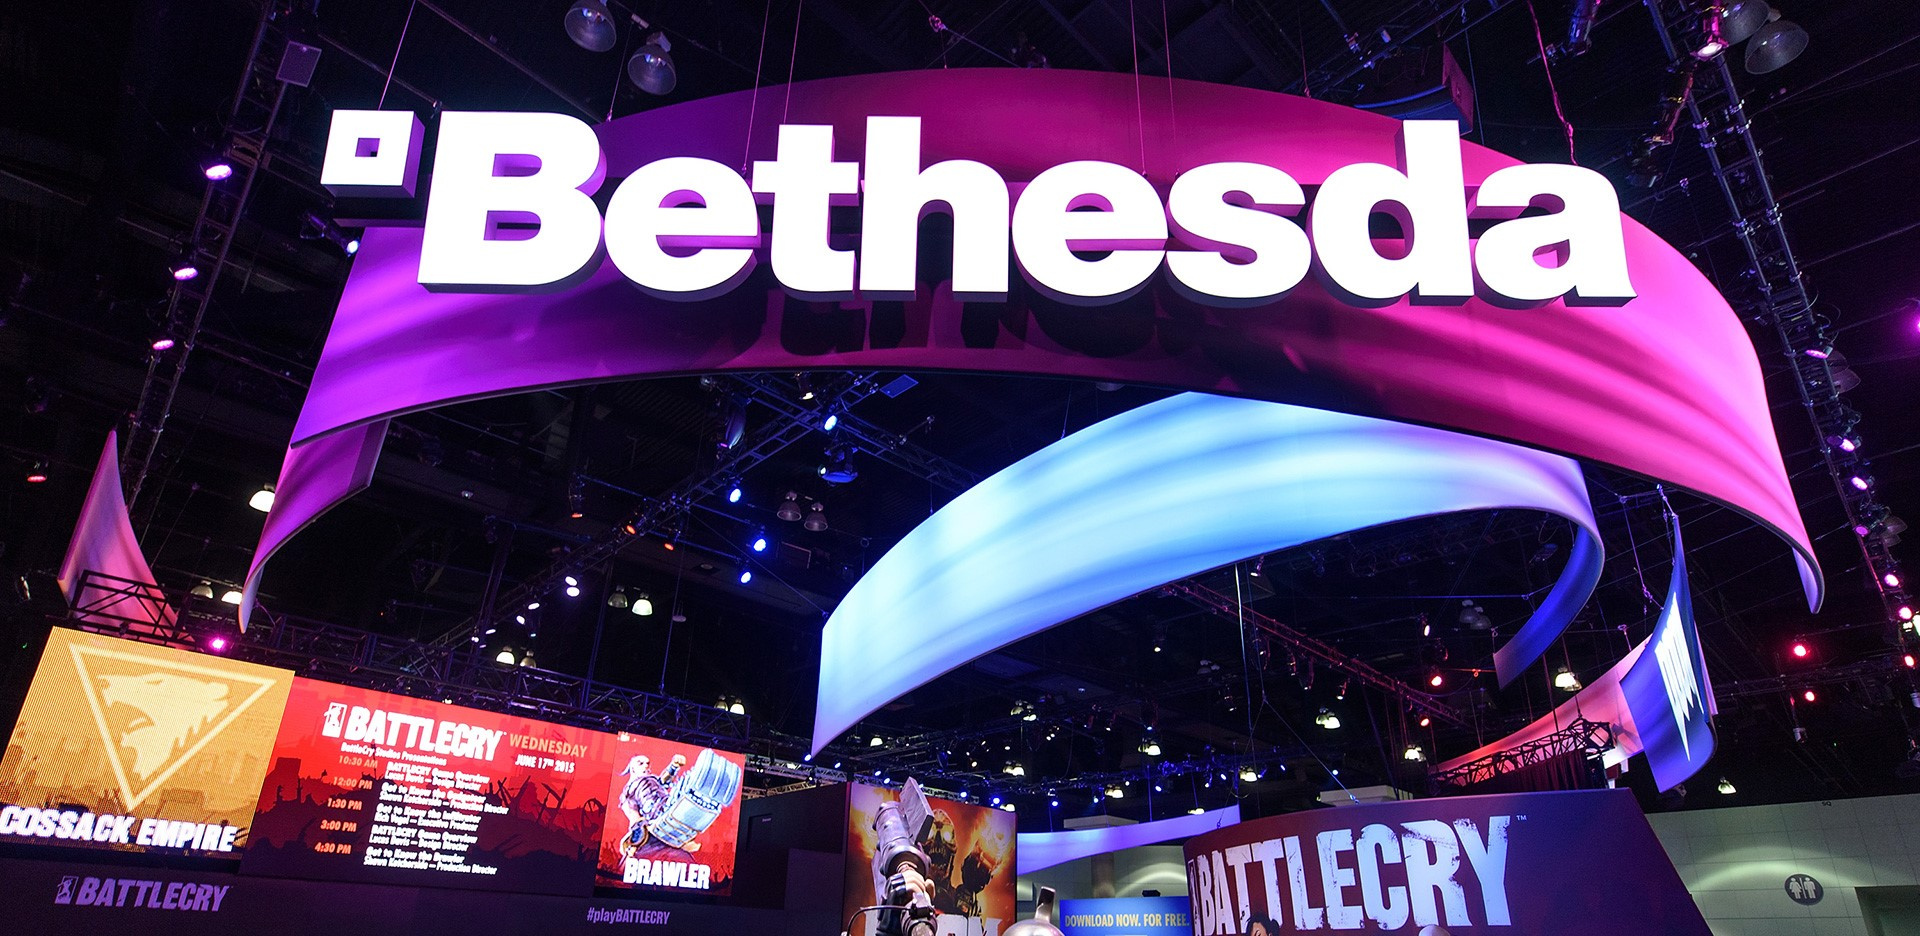 Bethesda will launch 'The Elder Scrolls 6' Trailer at E3 2020